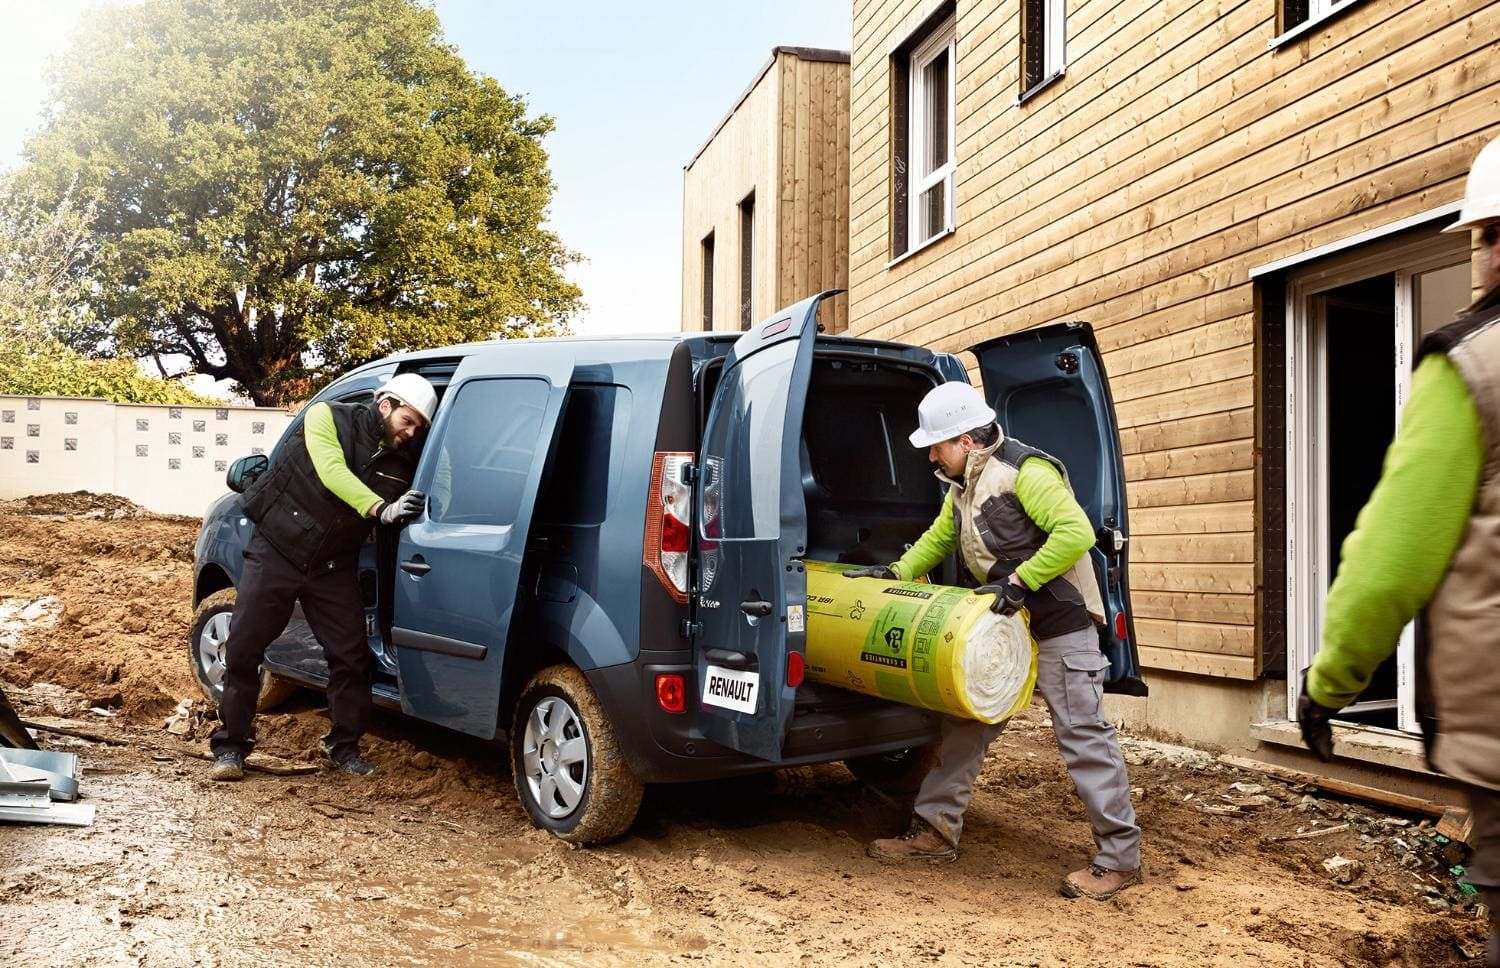 31+ Vw crafter van for sale ideas in 2021